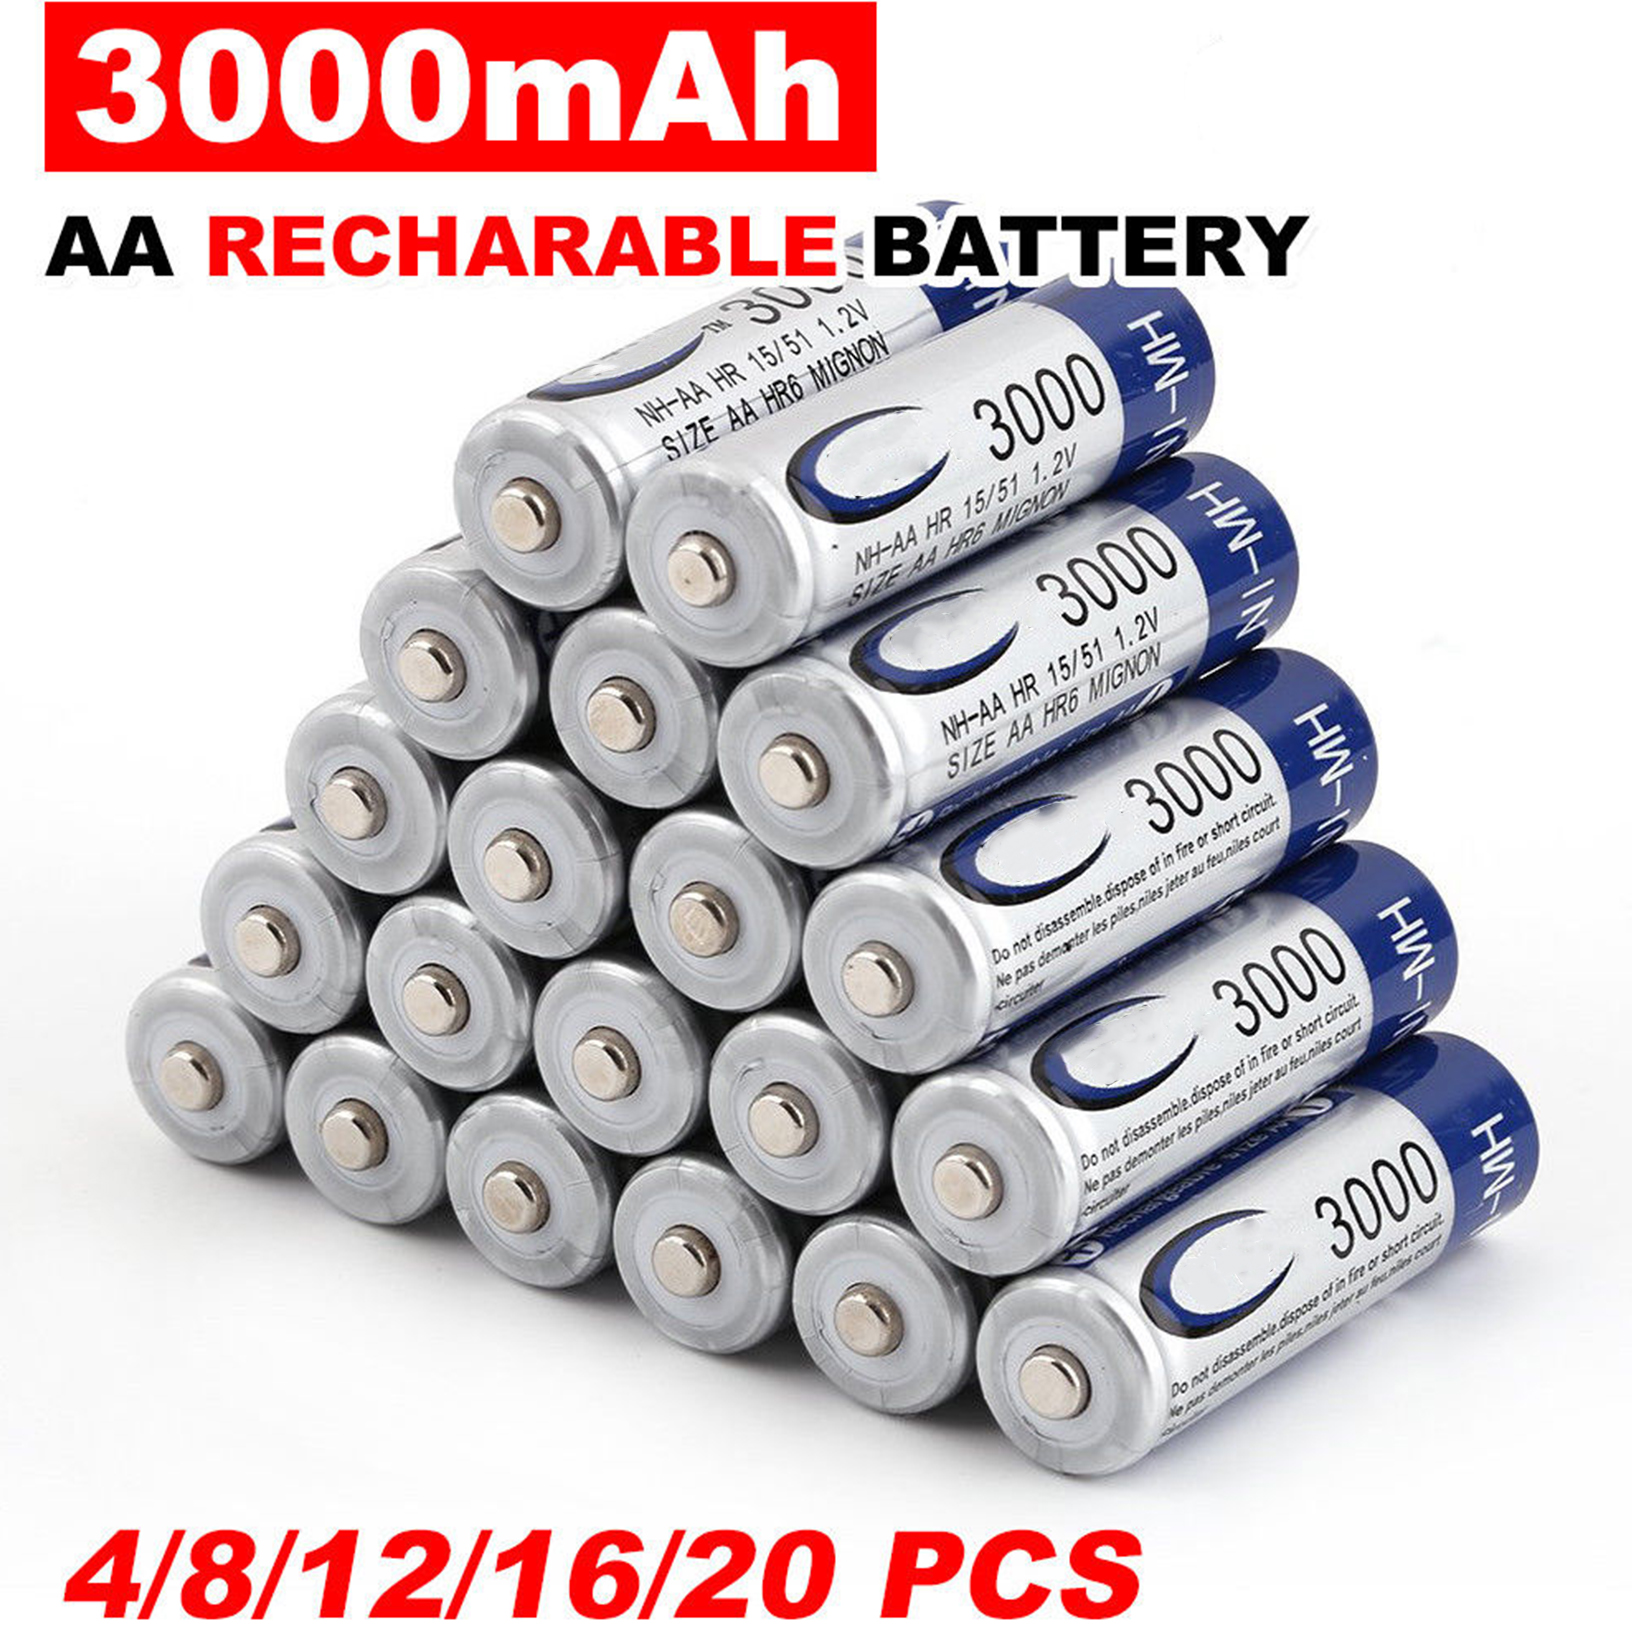 4-50pcs 3000mAh AA 2A NI-MH 1.2V Rechargeable Battery Recharge Pre-Charged Ni-MH Rechargeable Battery For Toys Camera Microphone(China)